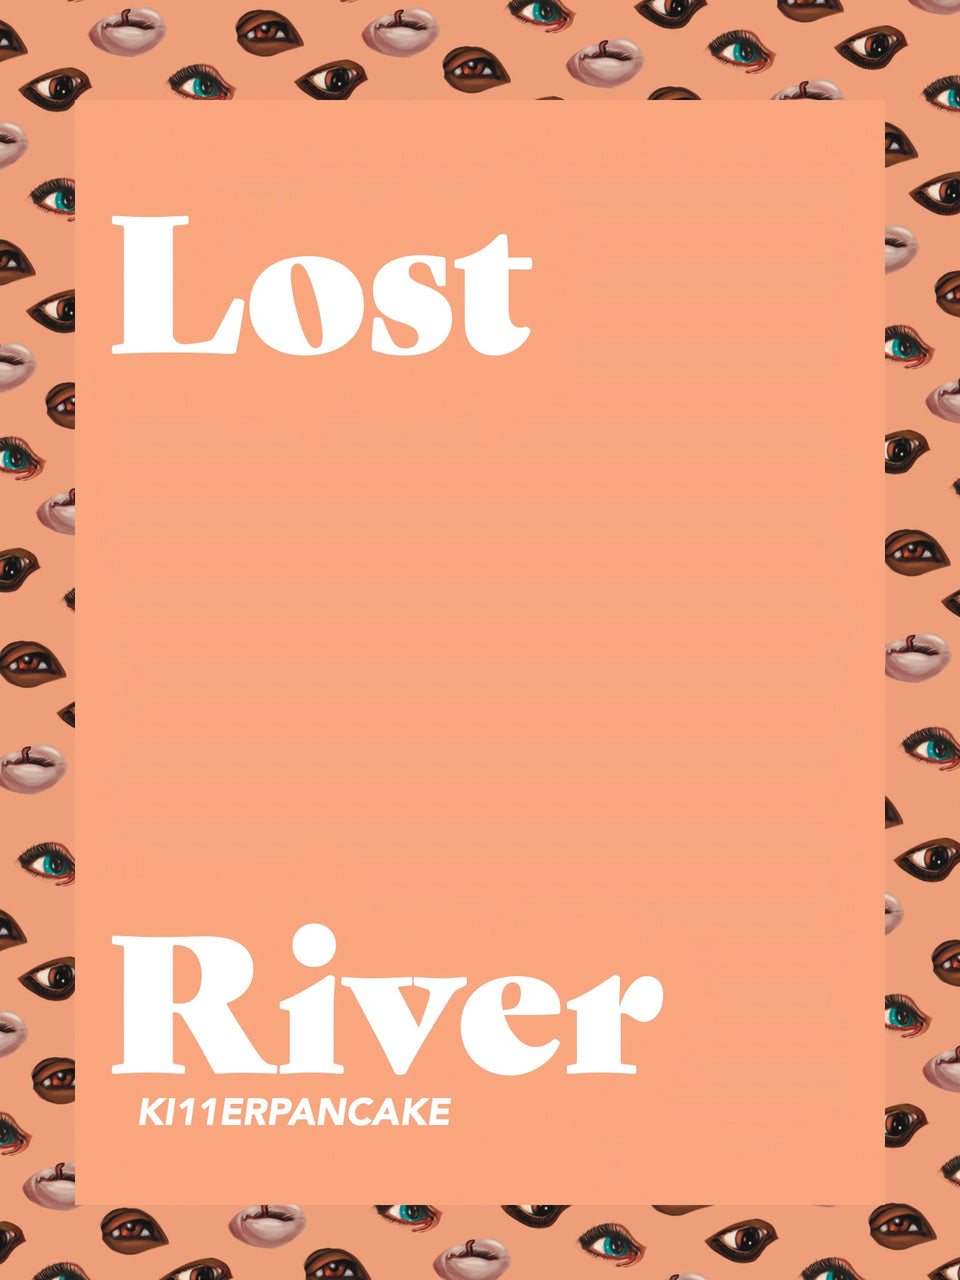 Lost River: A Deck for Divination and Play (DIGITAL GUIDE)